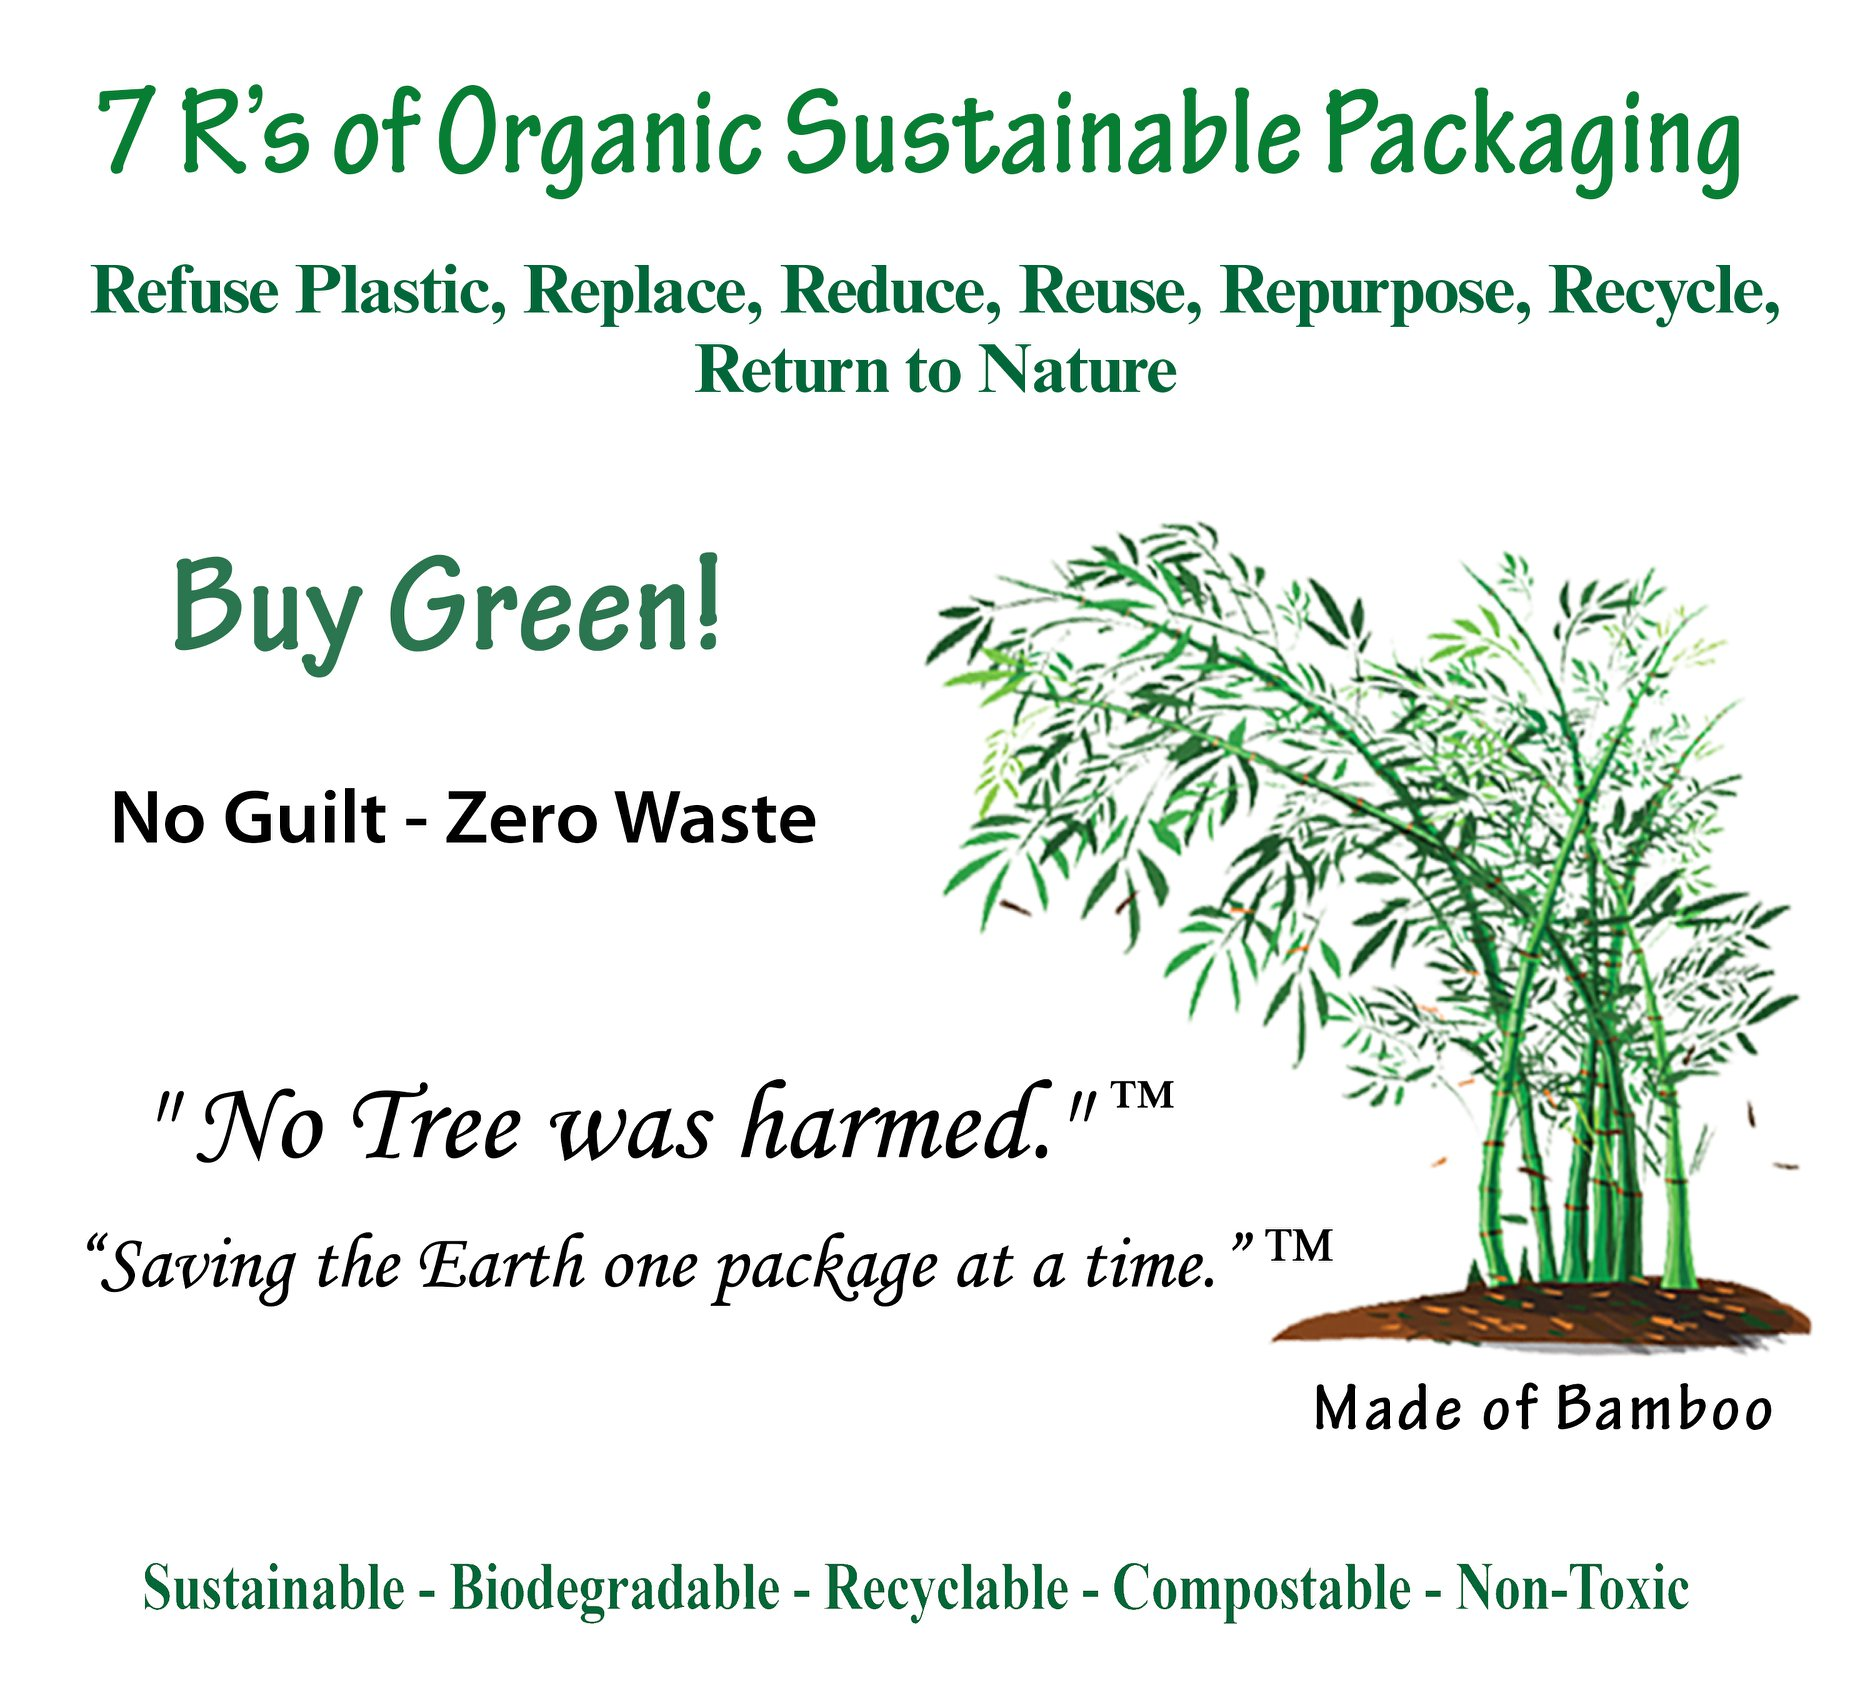 7 R's of Organic Sustainable Packaging.